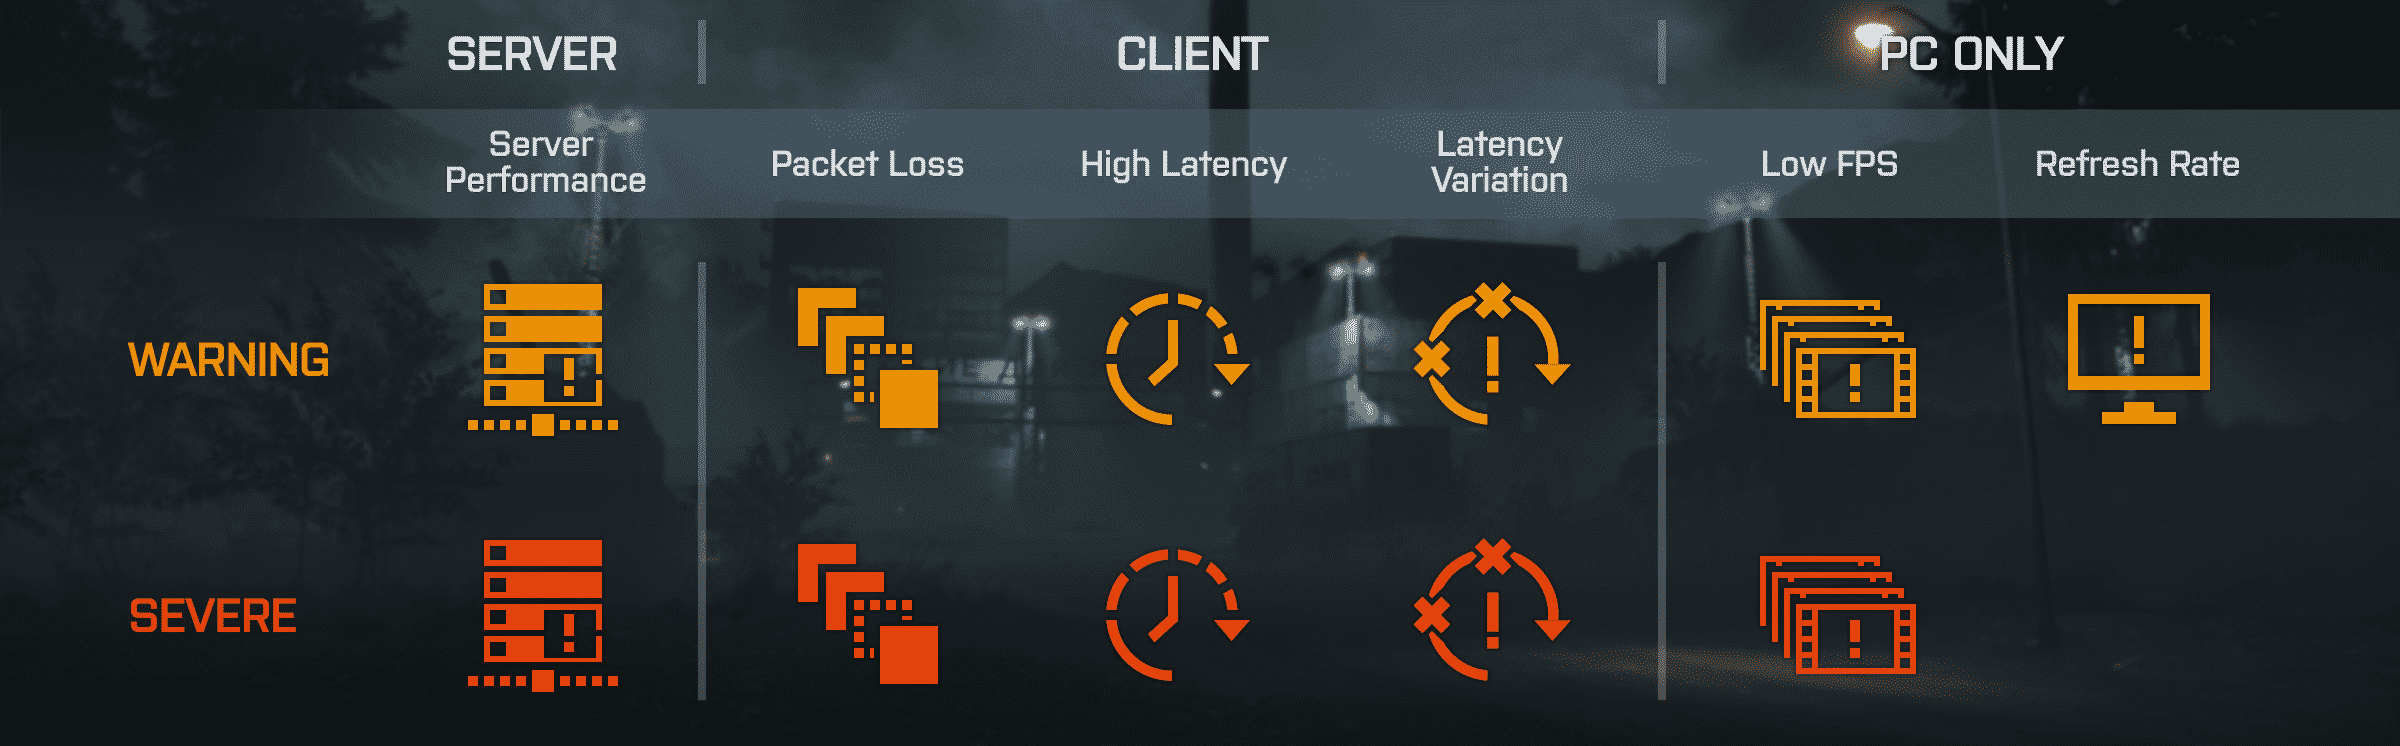 bf4_server_client_icons.png